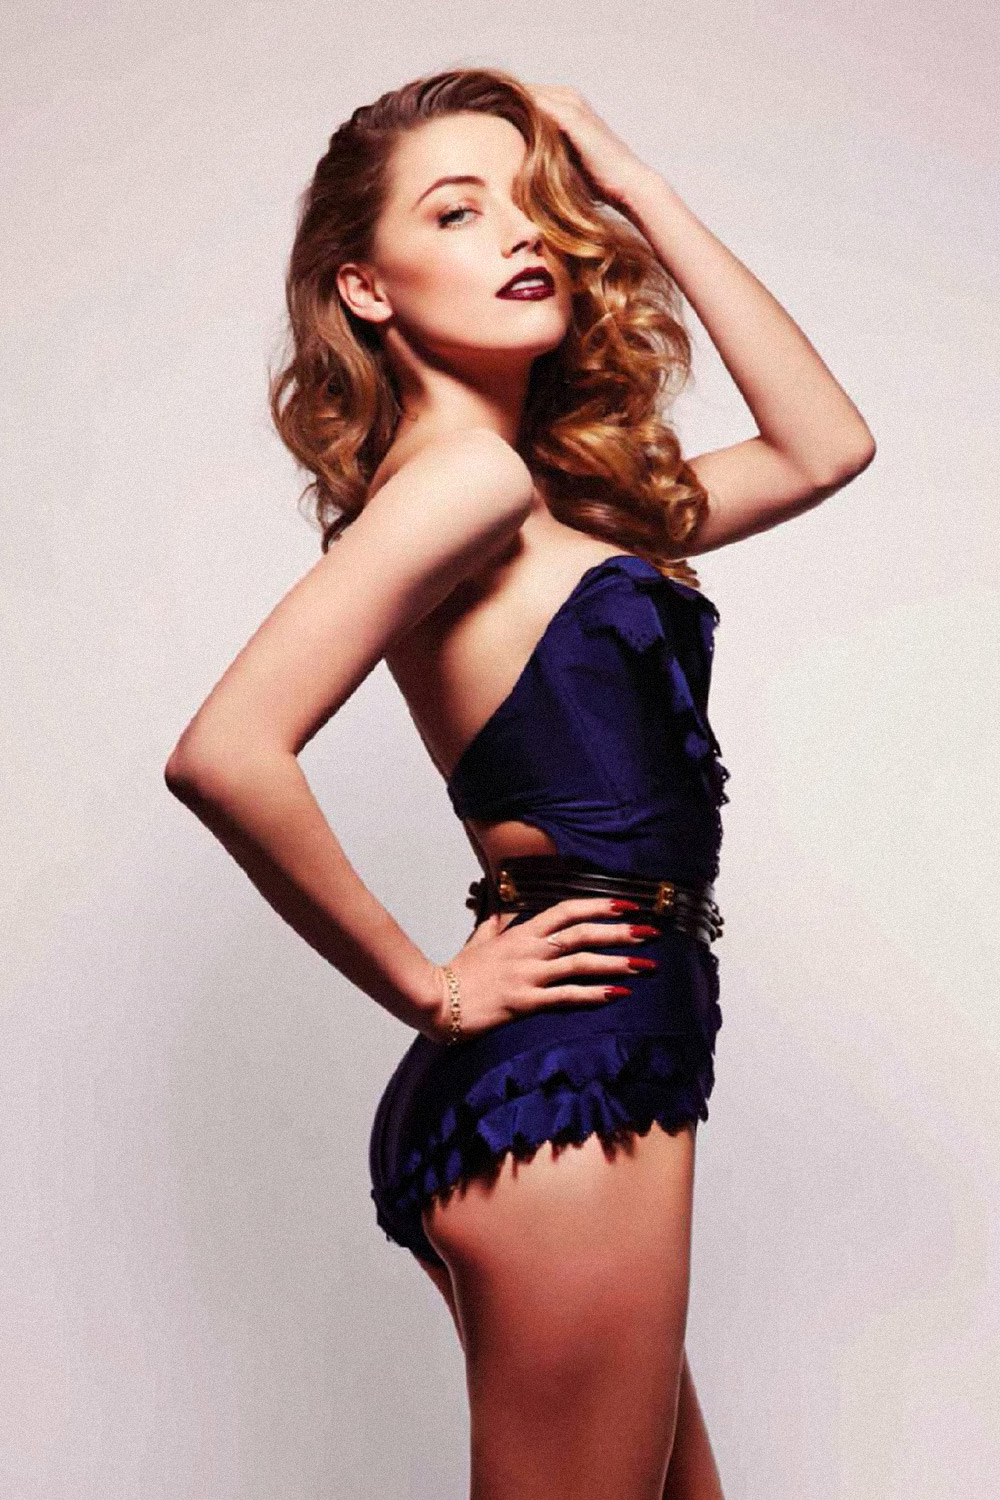 Clemson Tigers Iphone Wallpaper Amber Heard For Esquire Latinoamerica Full Shoot Oh No